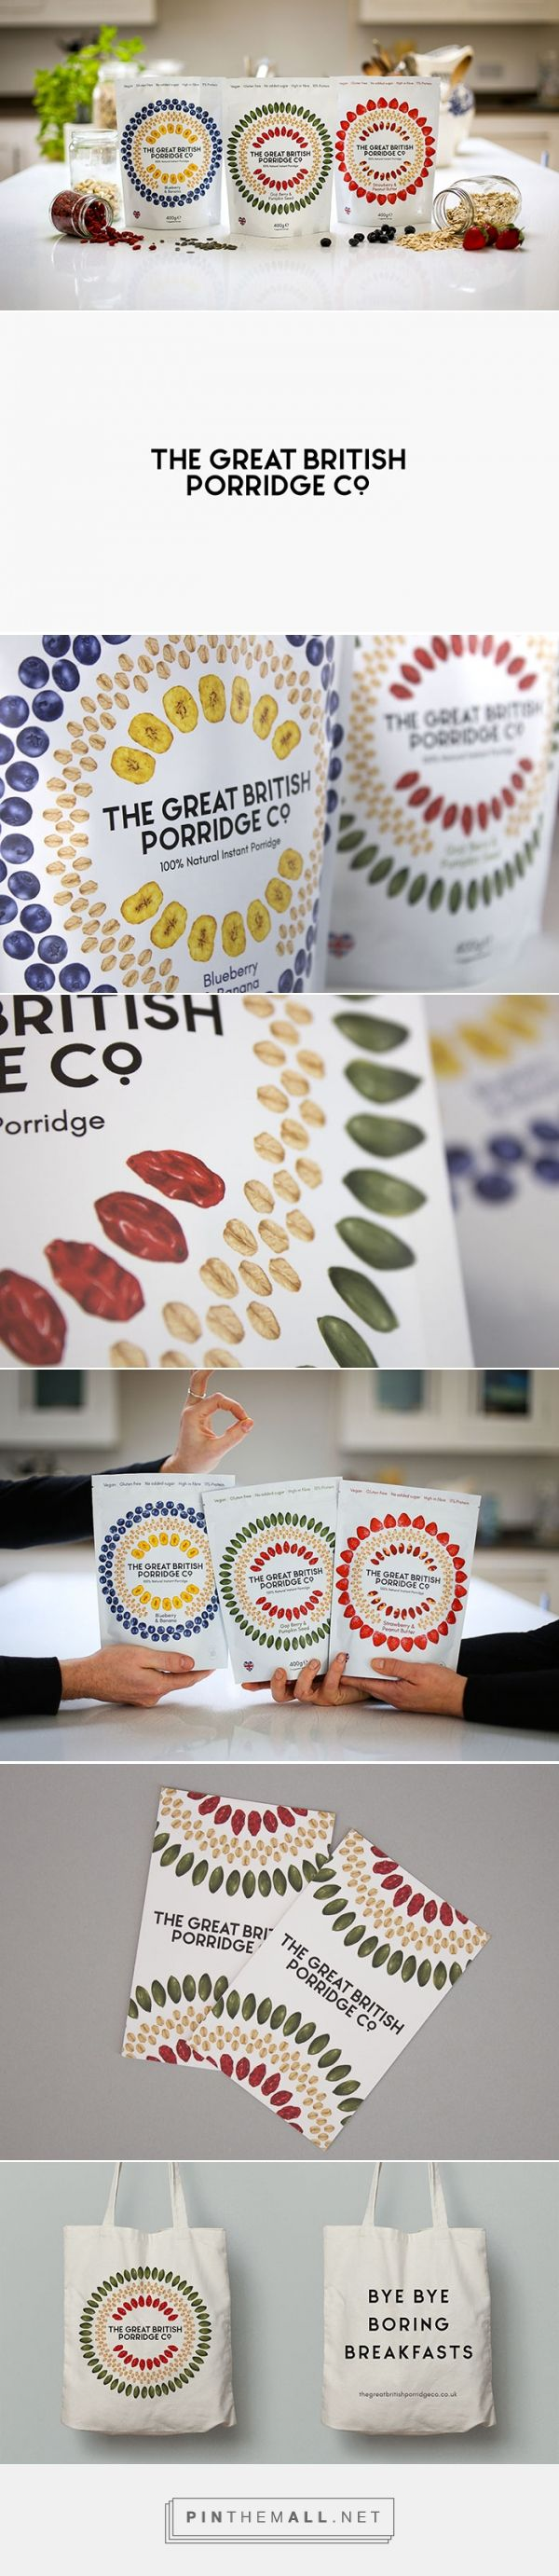 The Great British Porridge Co. by Studio Epitaph. Source: Daily Package Design Inspiration. Pin curated by #SFields99 #packaging #design #inspiration #ideas #creative #product #consumer #cereal #breakfast #food #pouch #doy #pack #typography #color #illustration